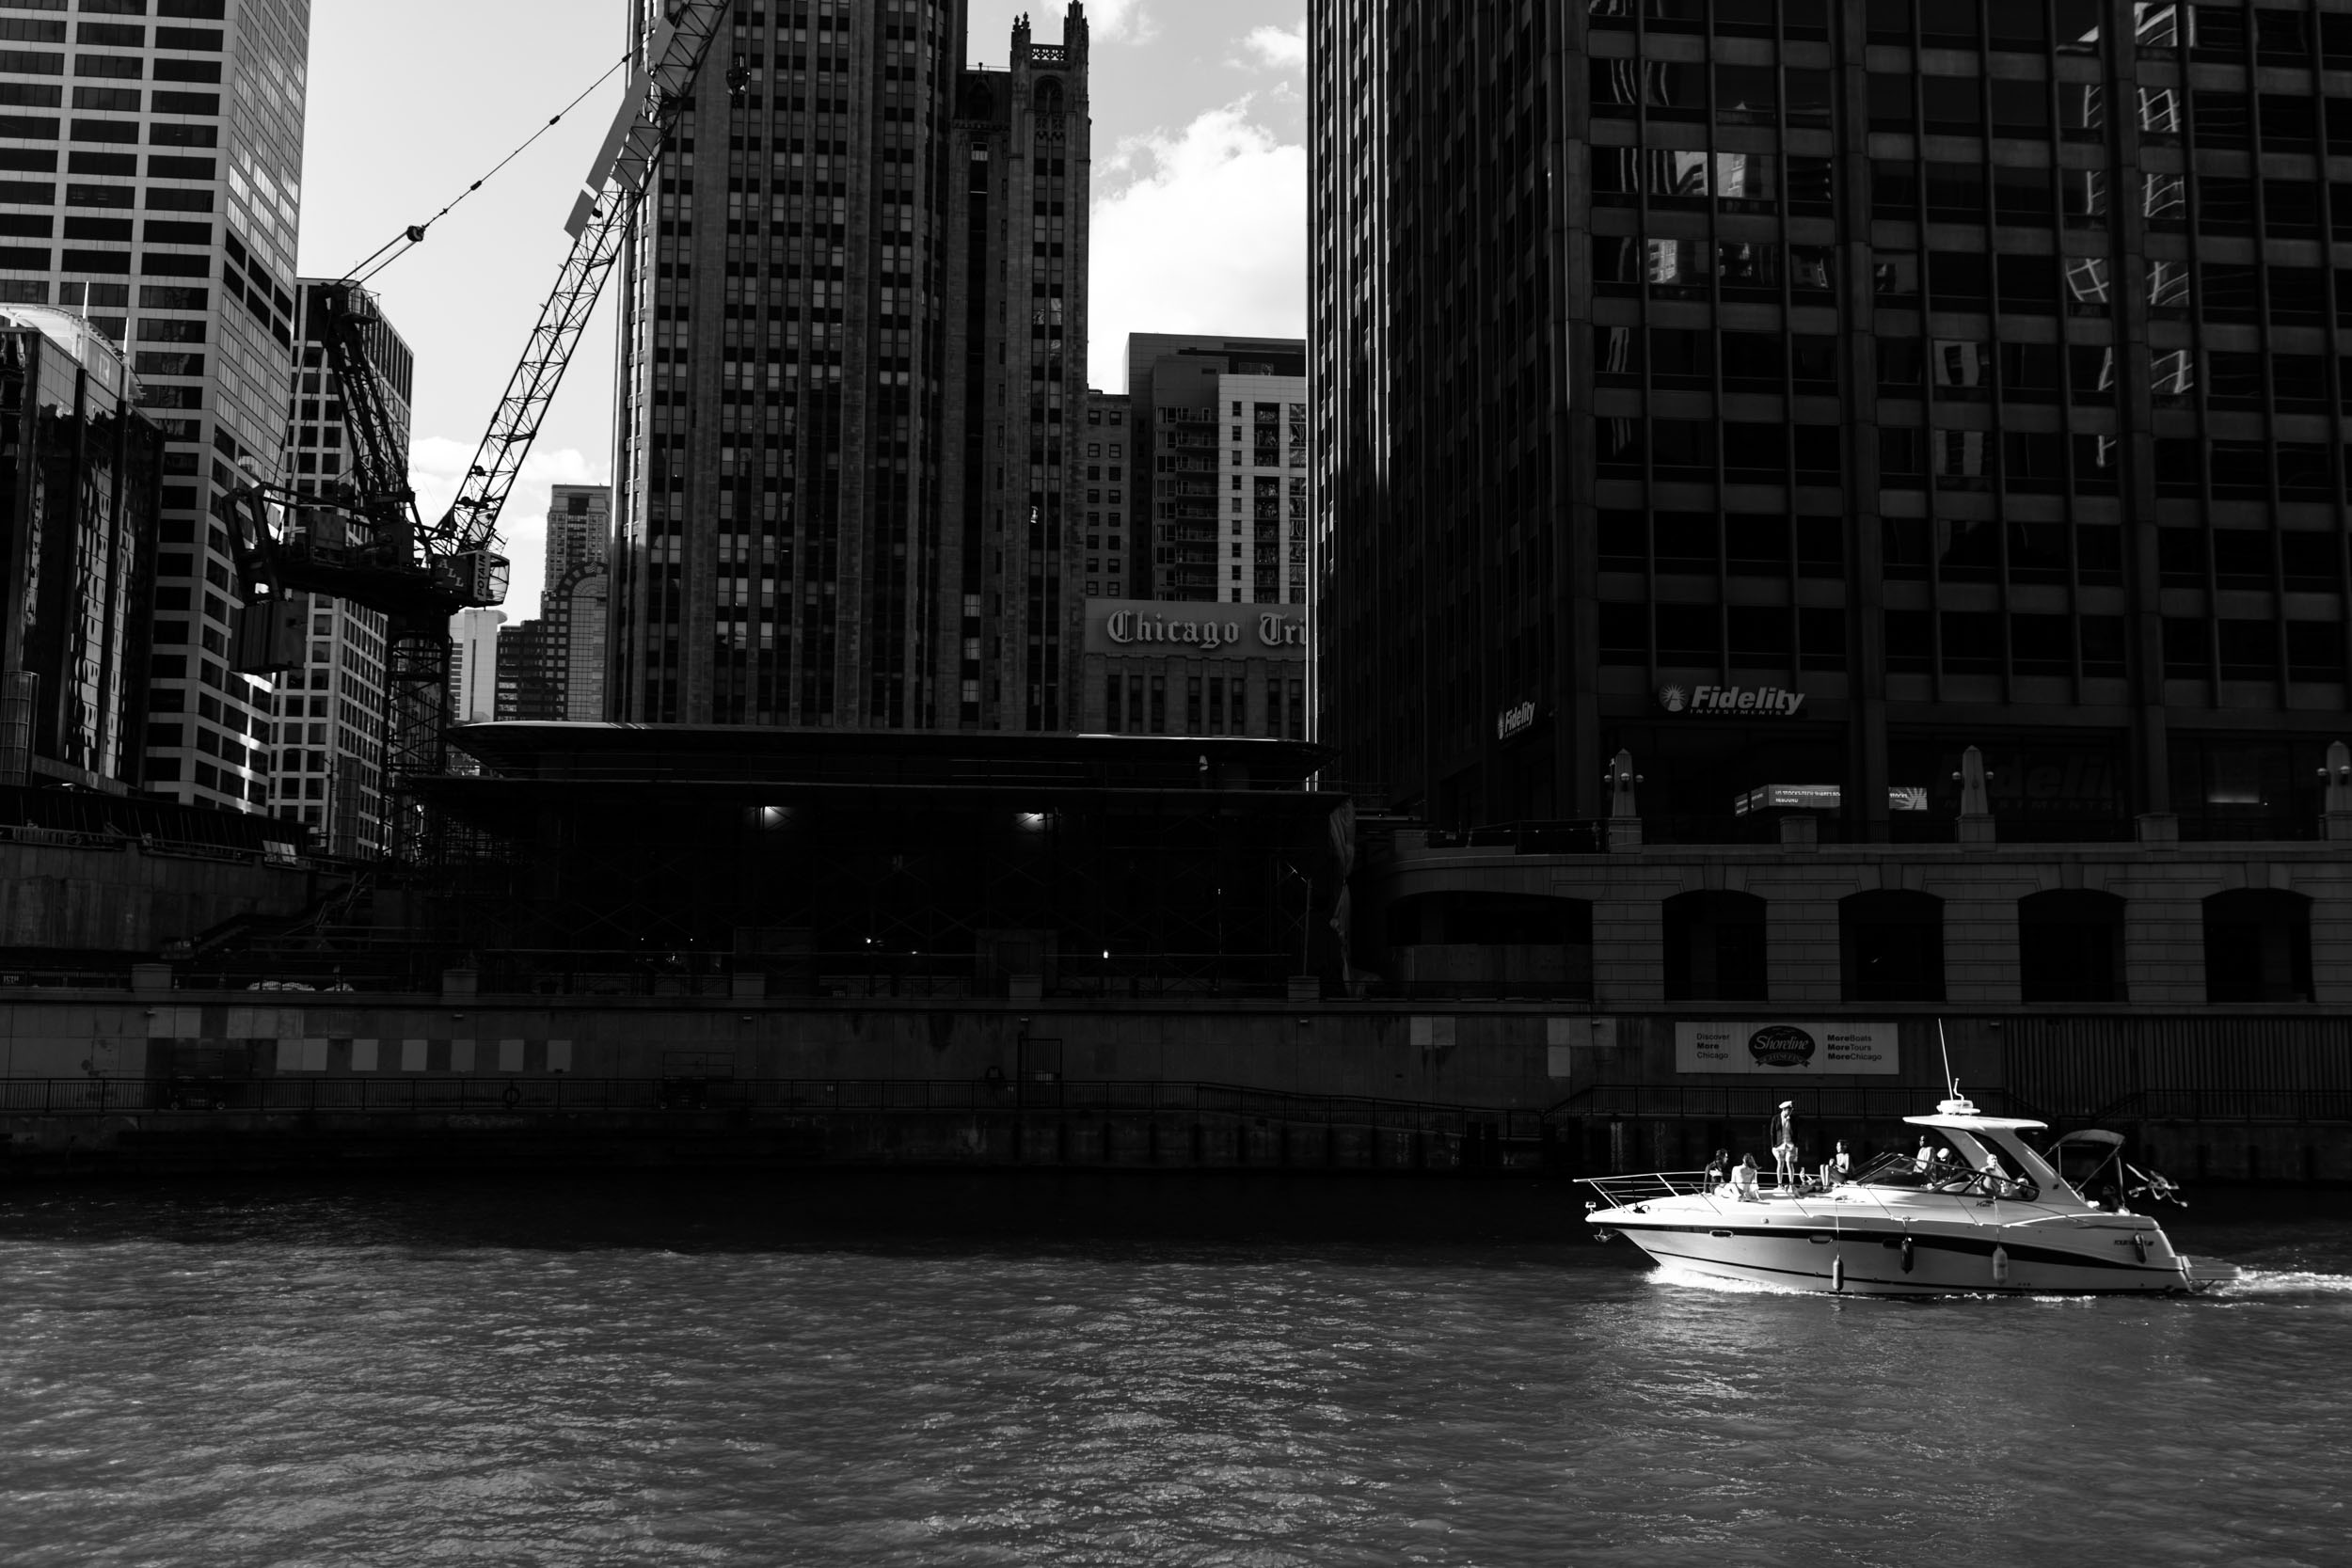 Laura and Jim got married on the Chicago River